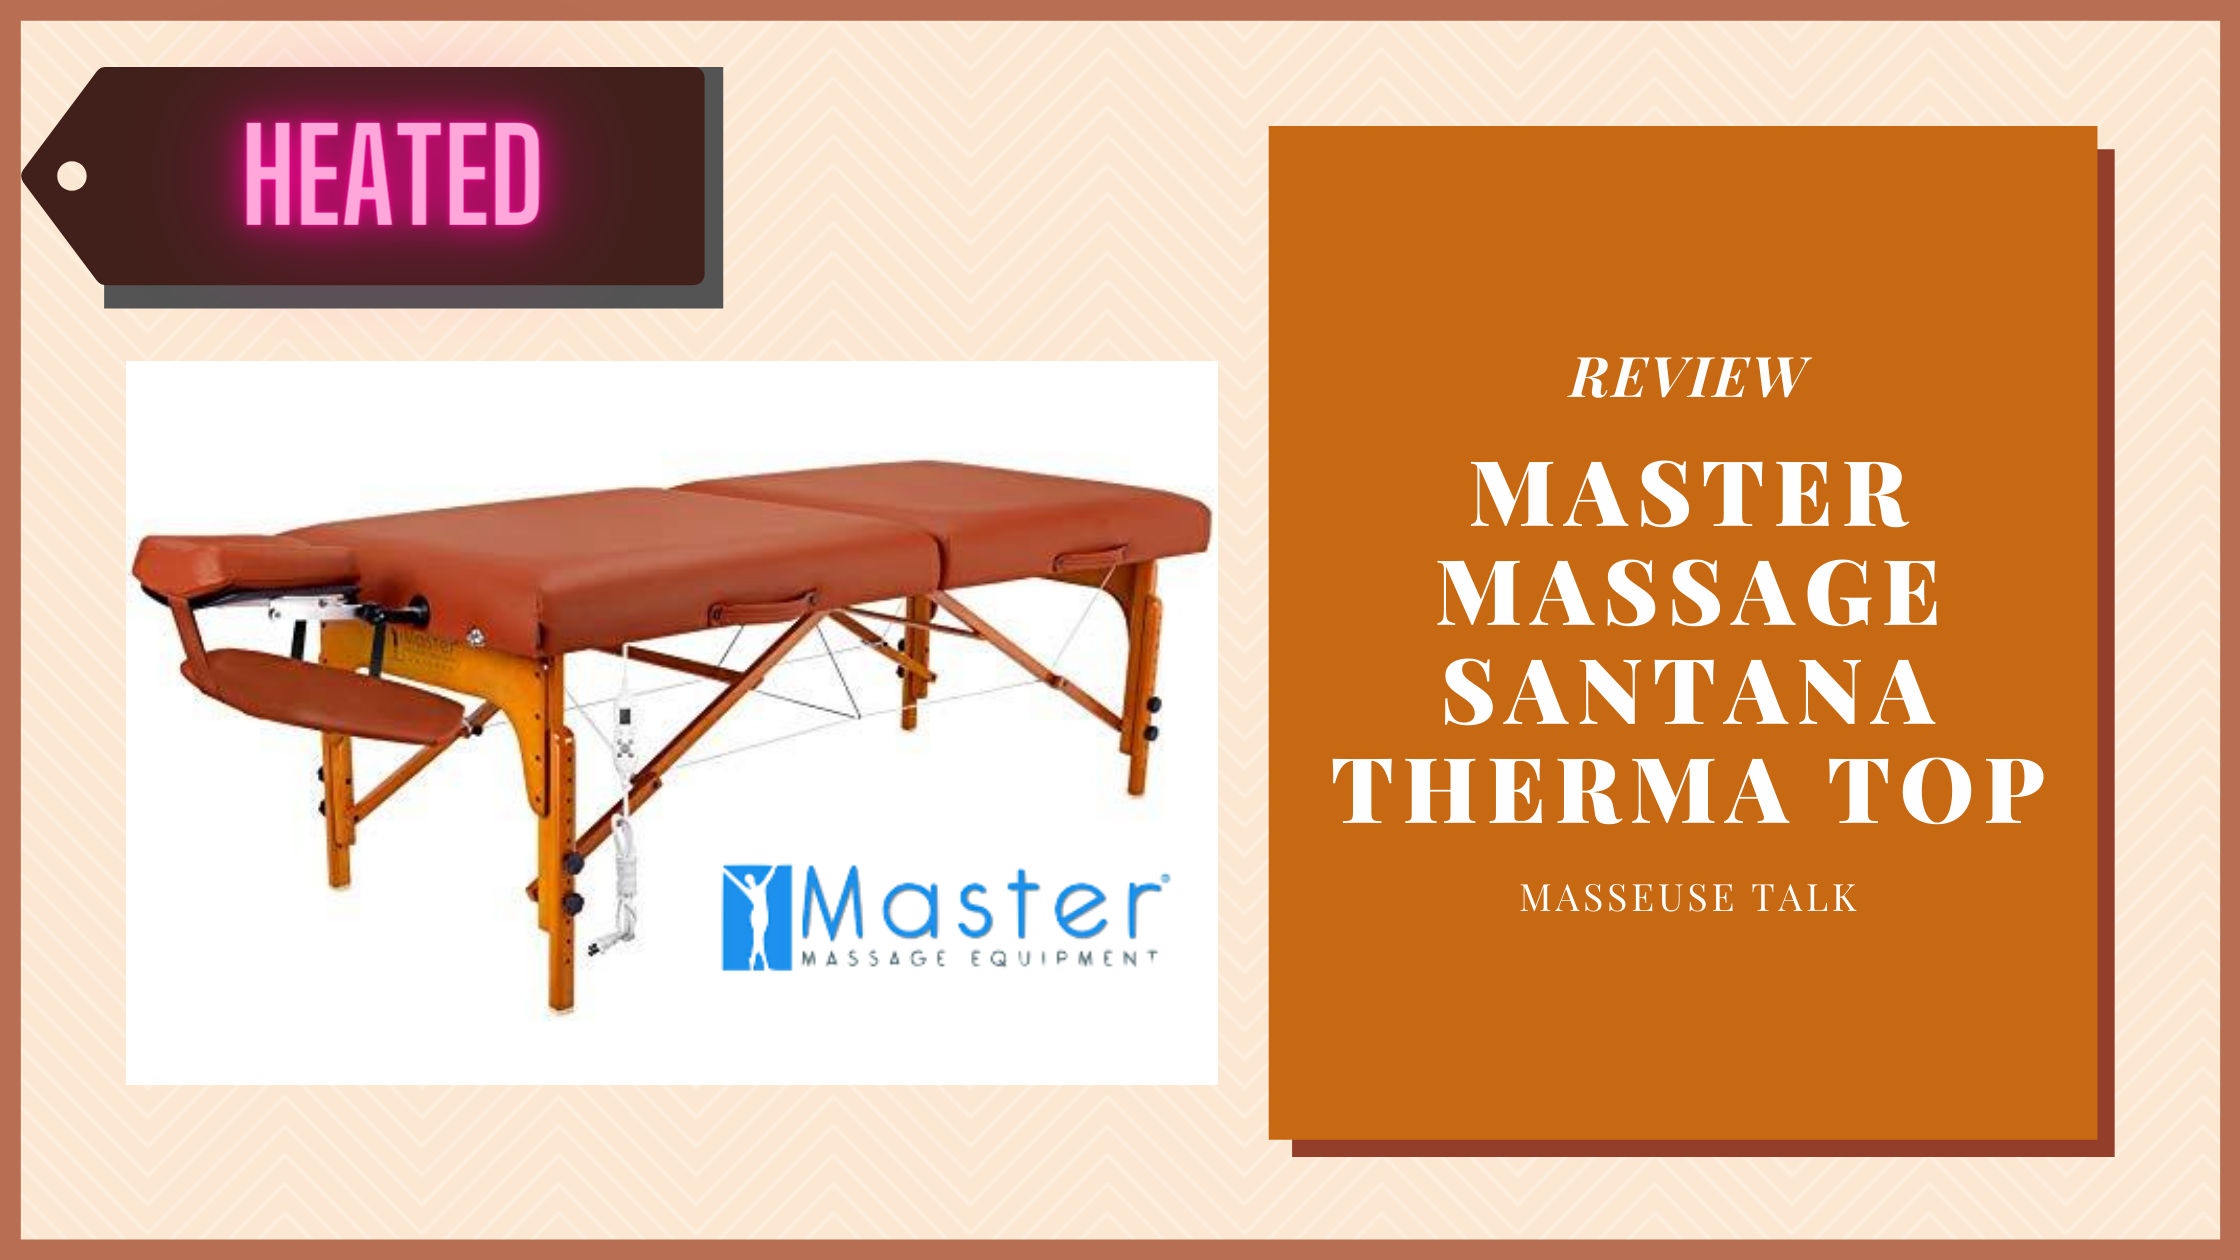 Master Massage Therma Top Santana Portable Massage Table